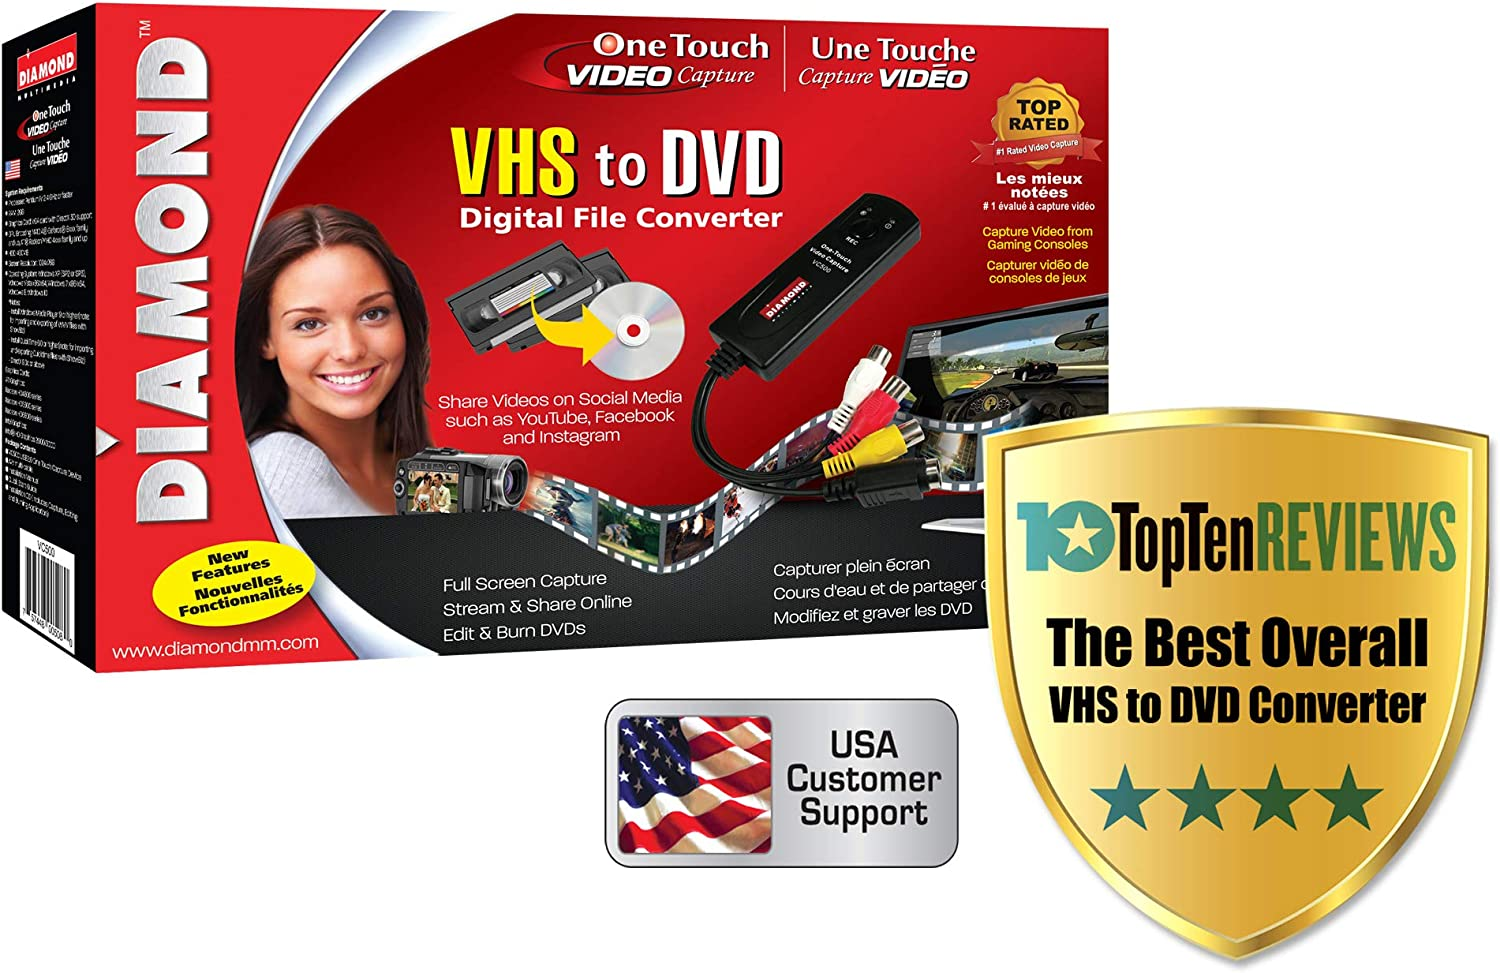 Diamond VC500 USB 2.0 One Touch VHS to DVD Video Capture Device with Easy to use Software, Convert, Edit and Save to Digital Files For Win7, Win8 and Win10: Computers & Accessories